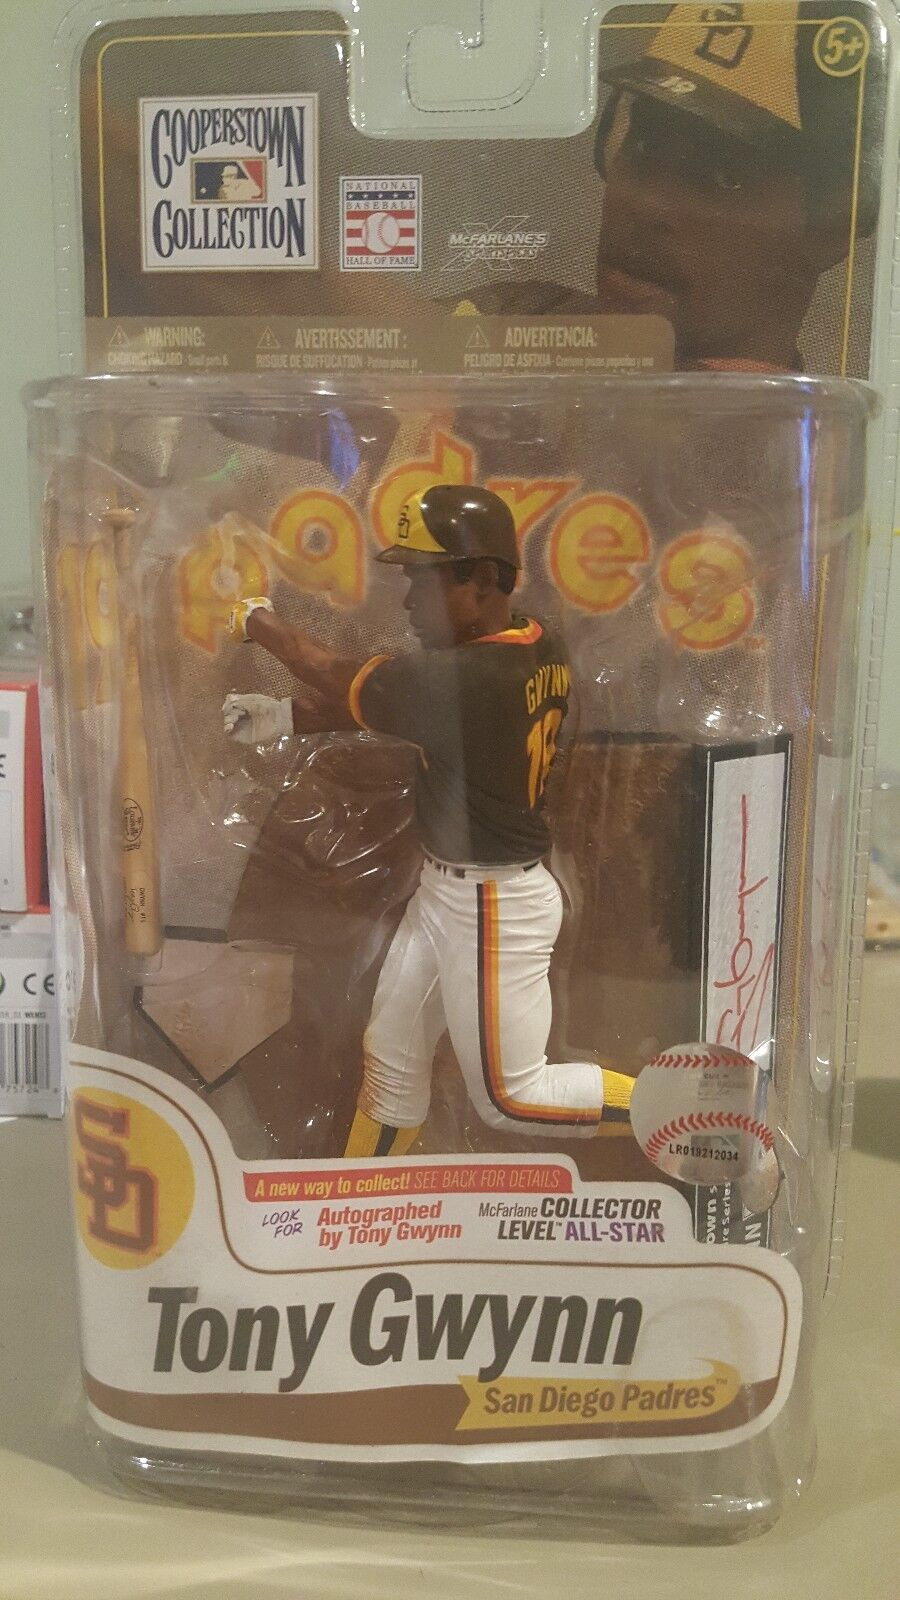 MCFARLANE MLB COOPERSTOWN COLLECTION AUTOGRAPHED TONY GWYNN OF 100